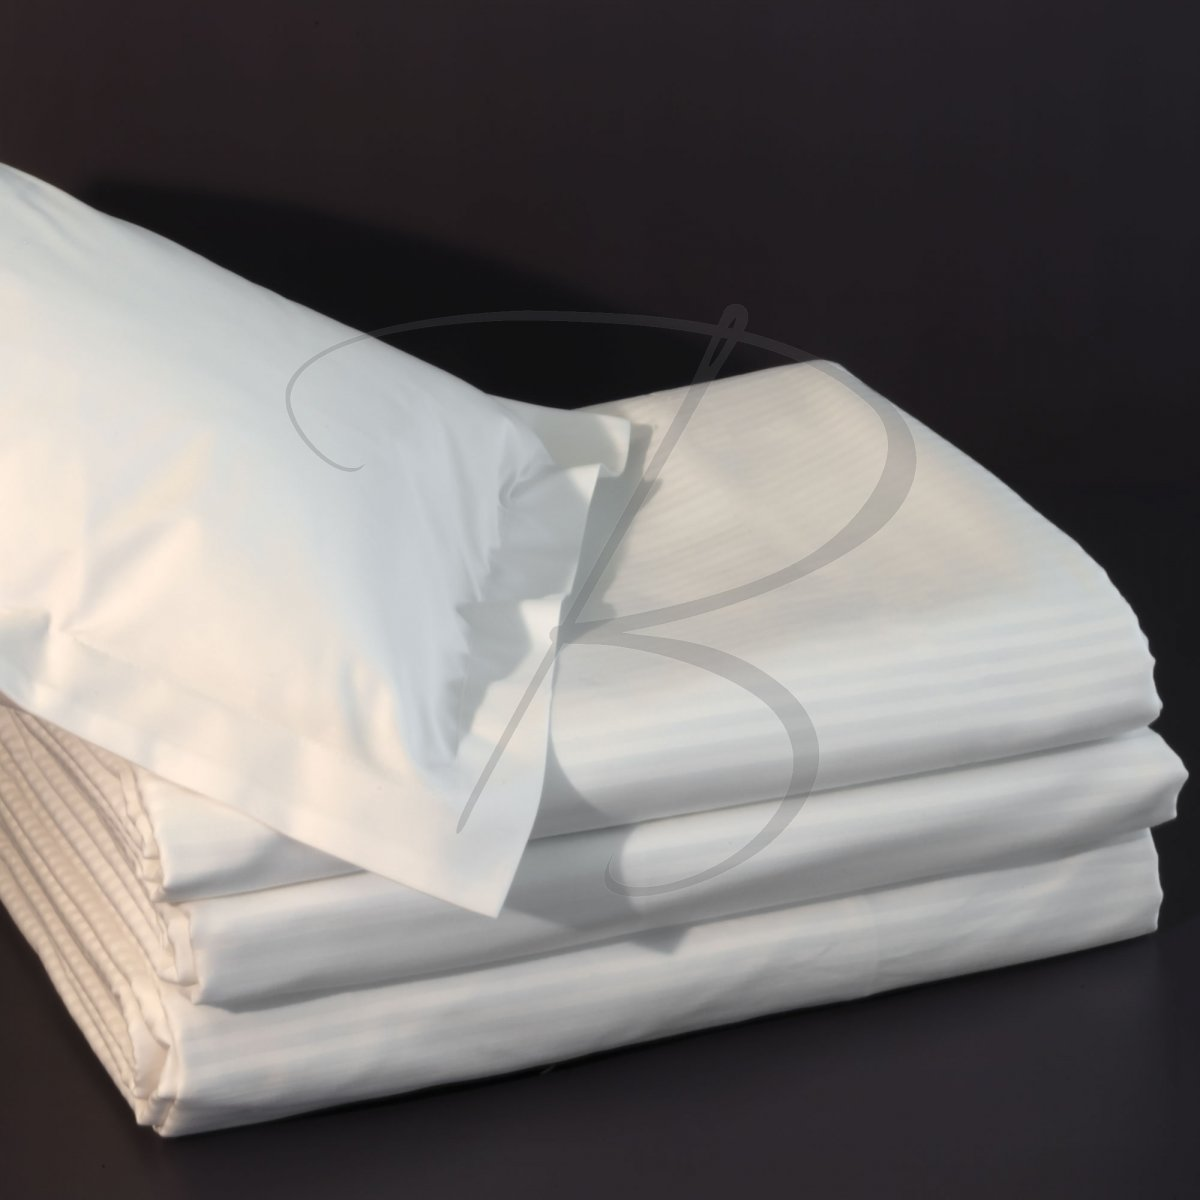 Percale cotton comforter cover 1900 - 260 x 240 - 120g/m² - 200TC